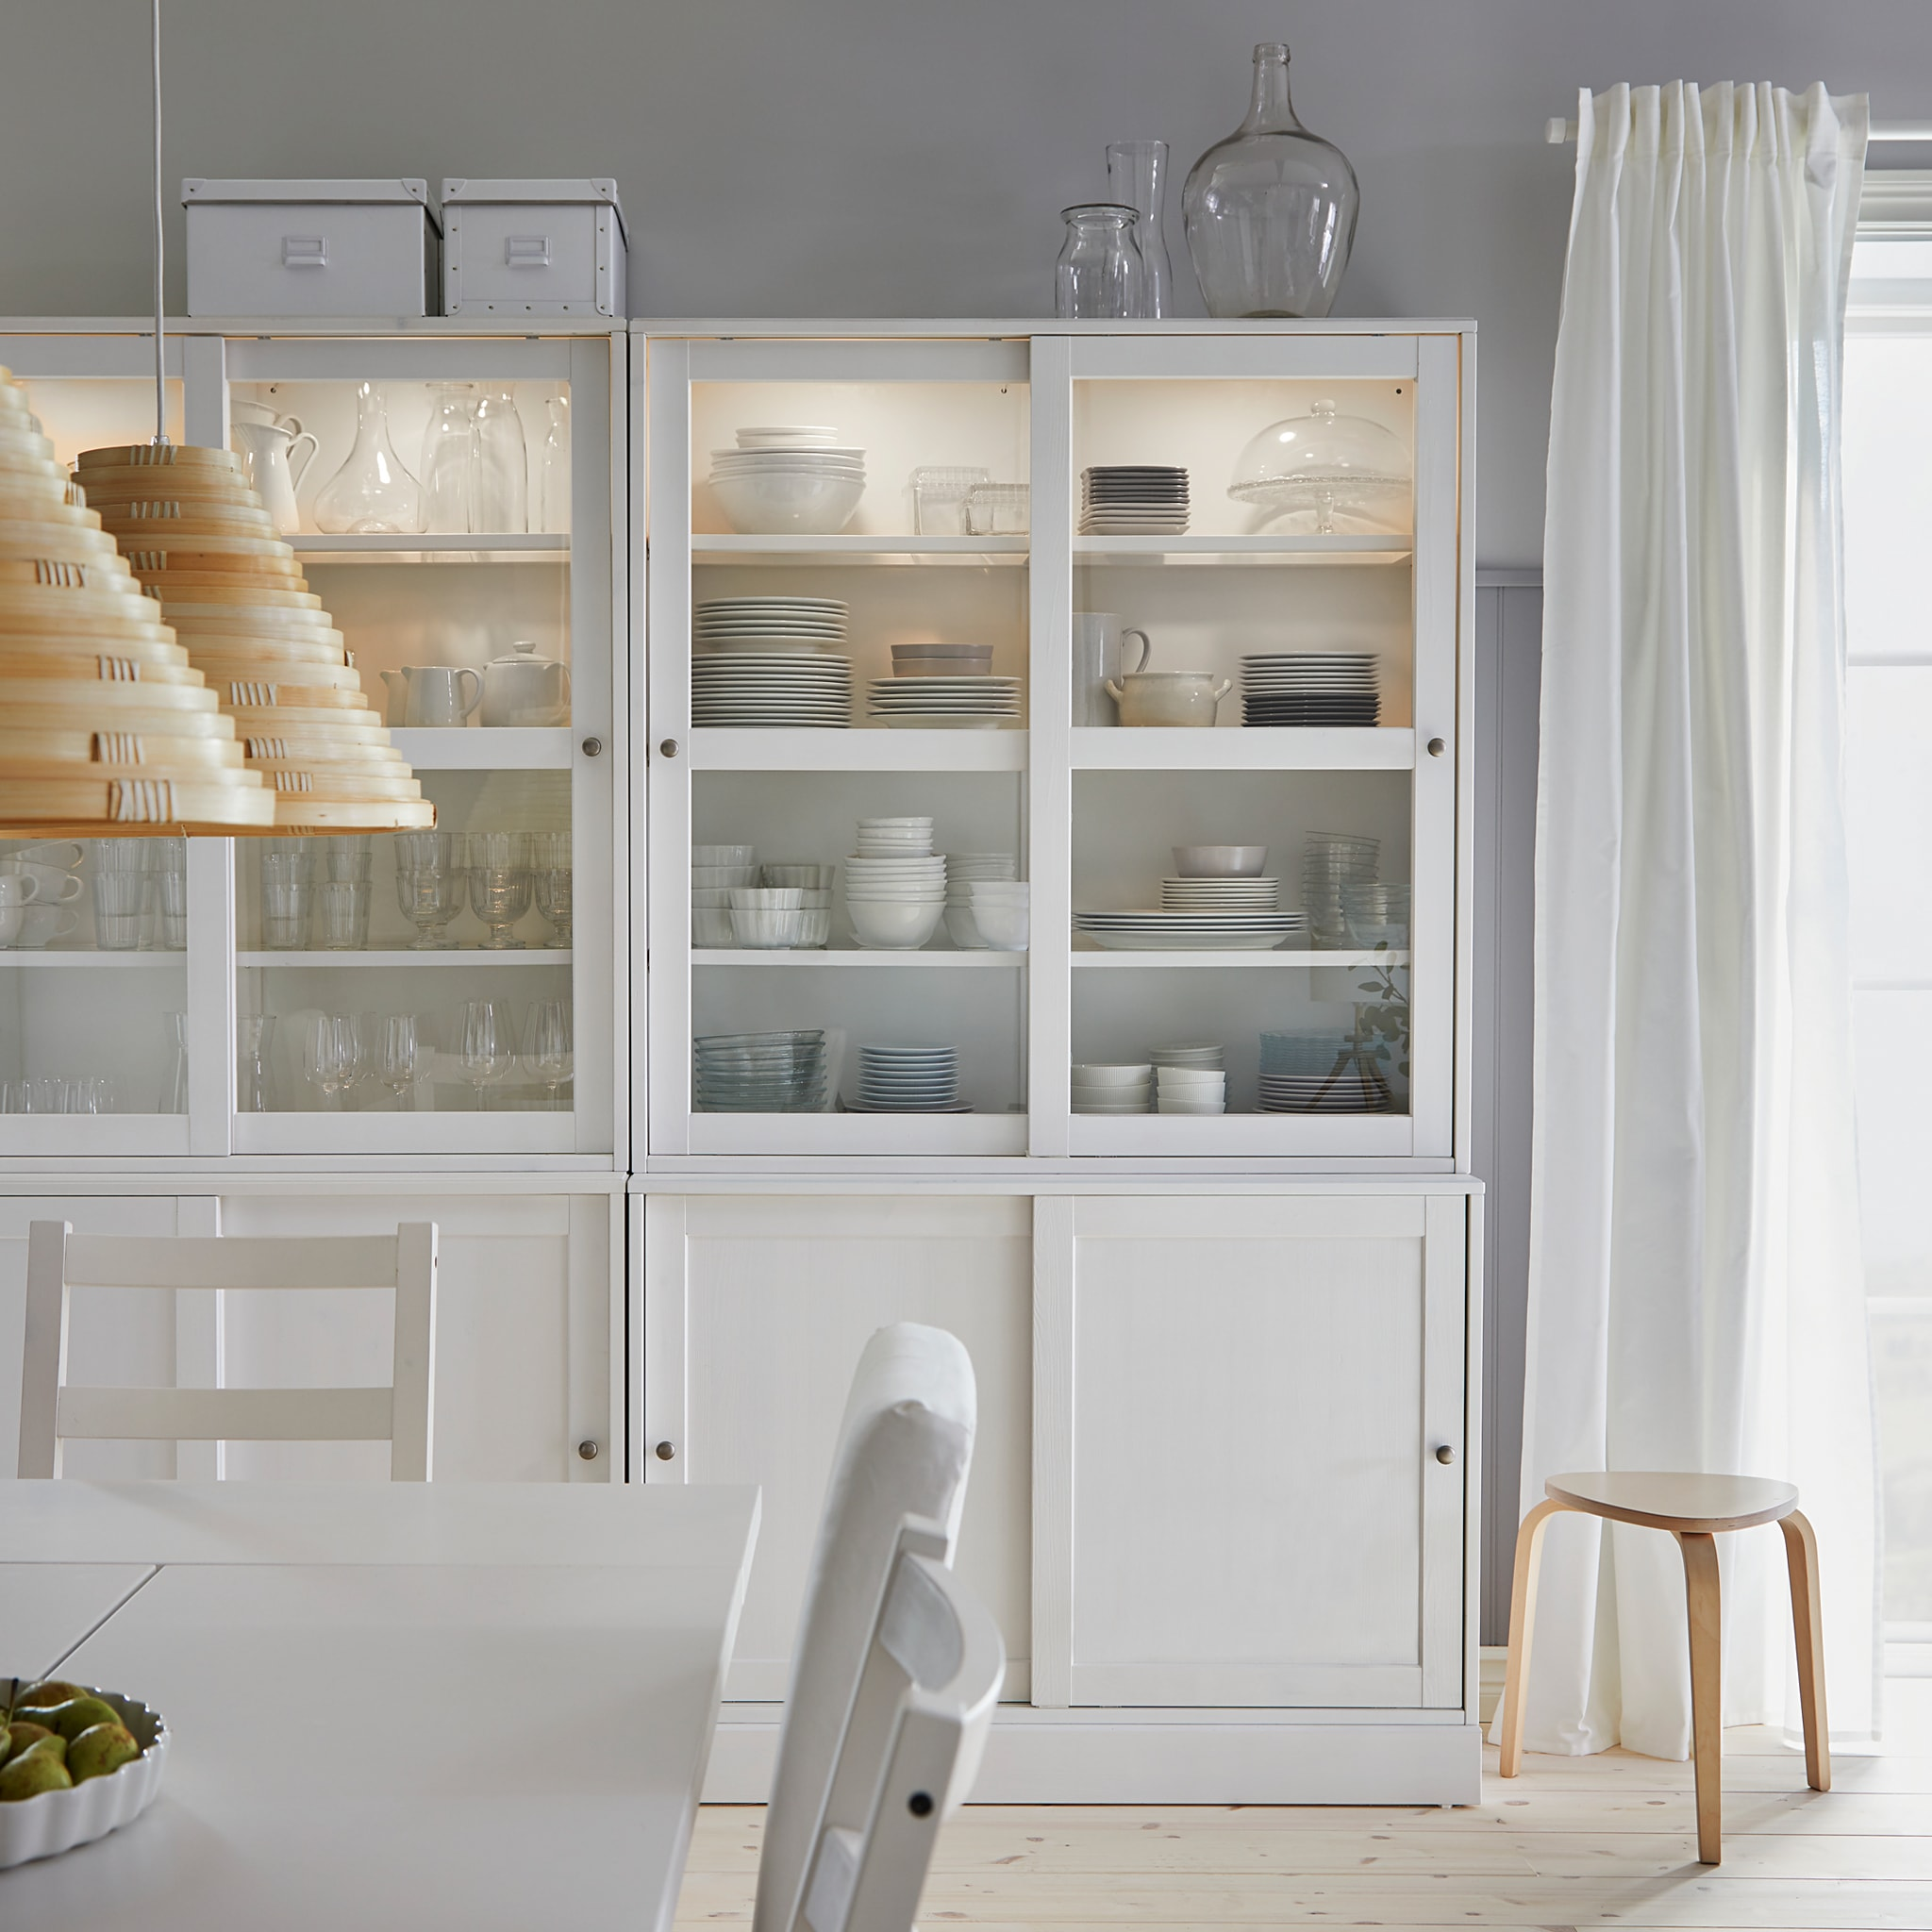 A HAVSTA white storage combination with sliding glass doors store dinnerware and glasses in a dining room.